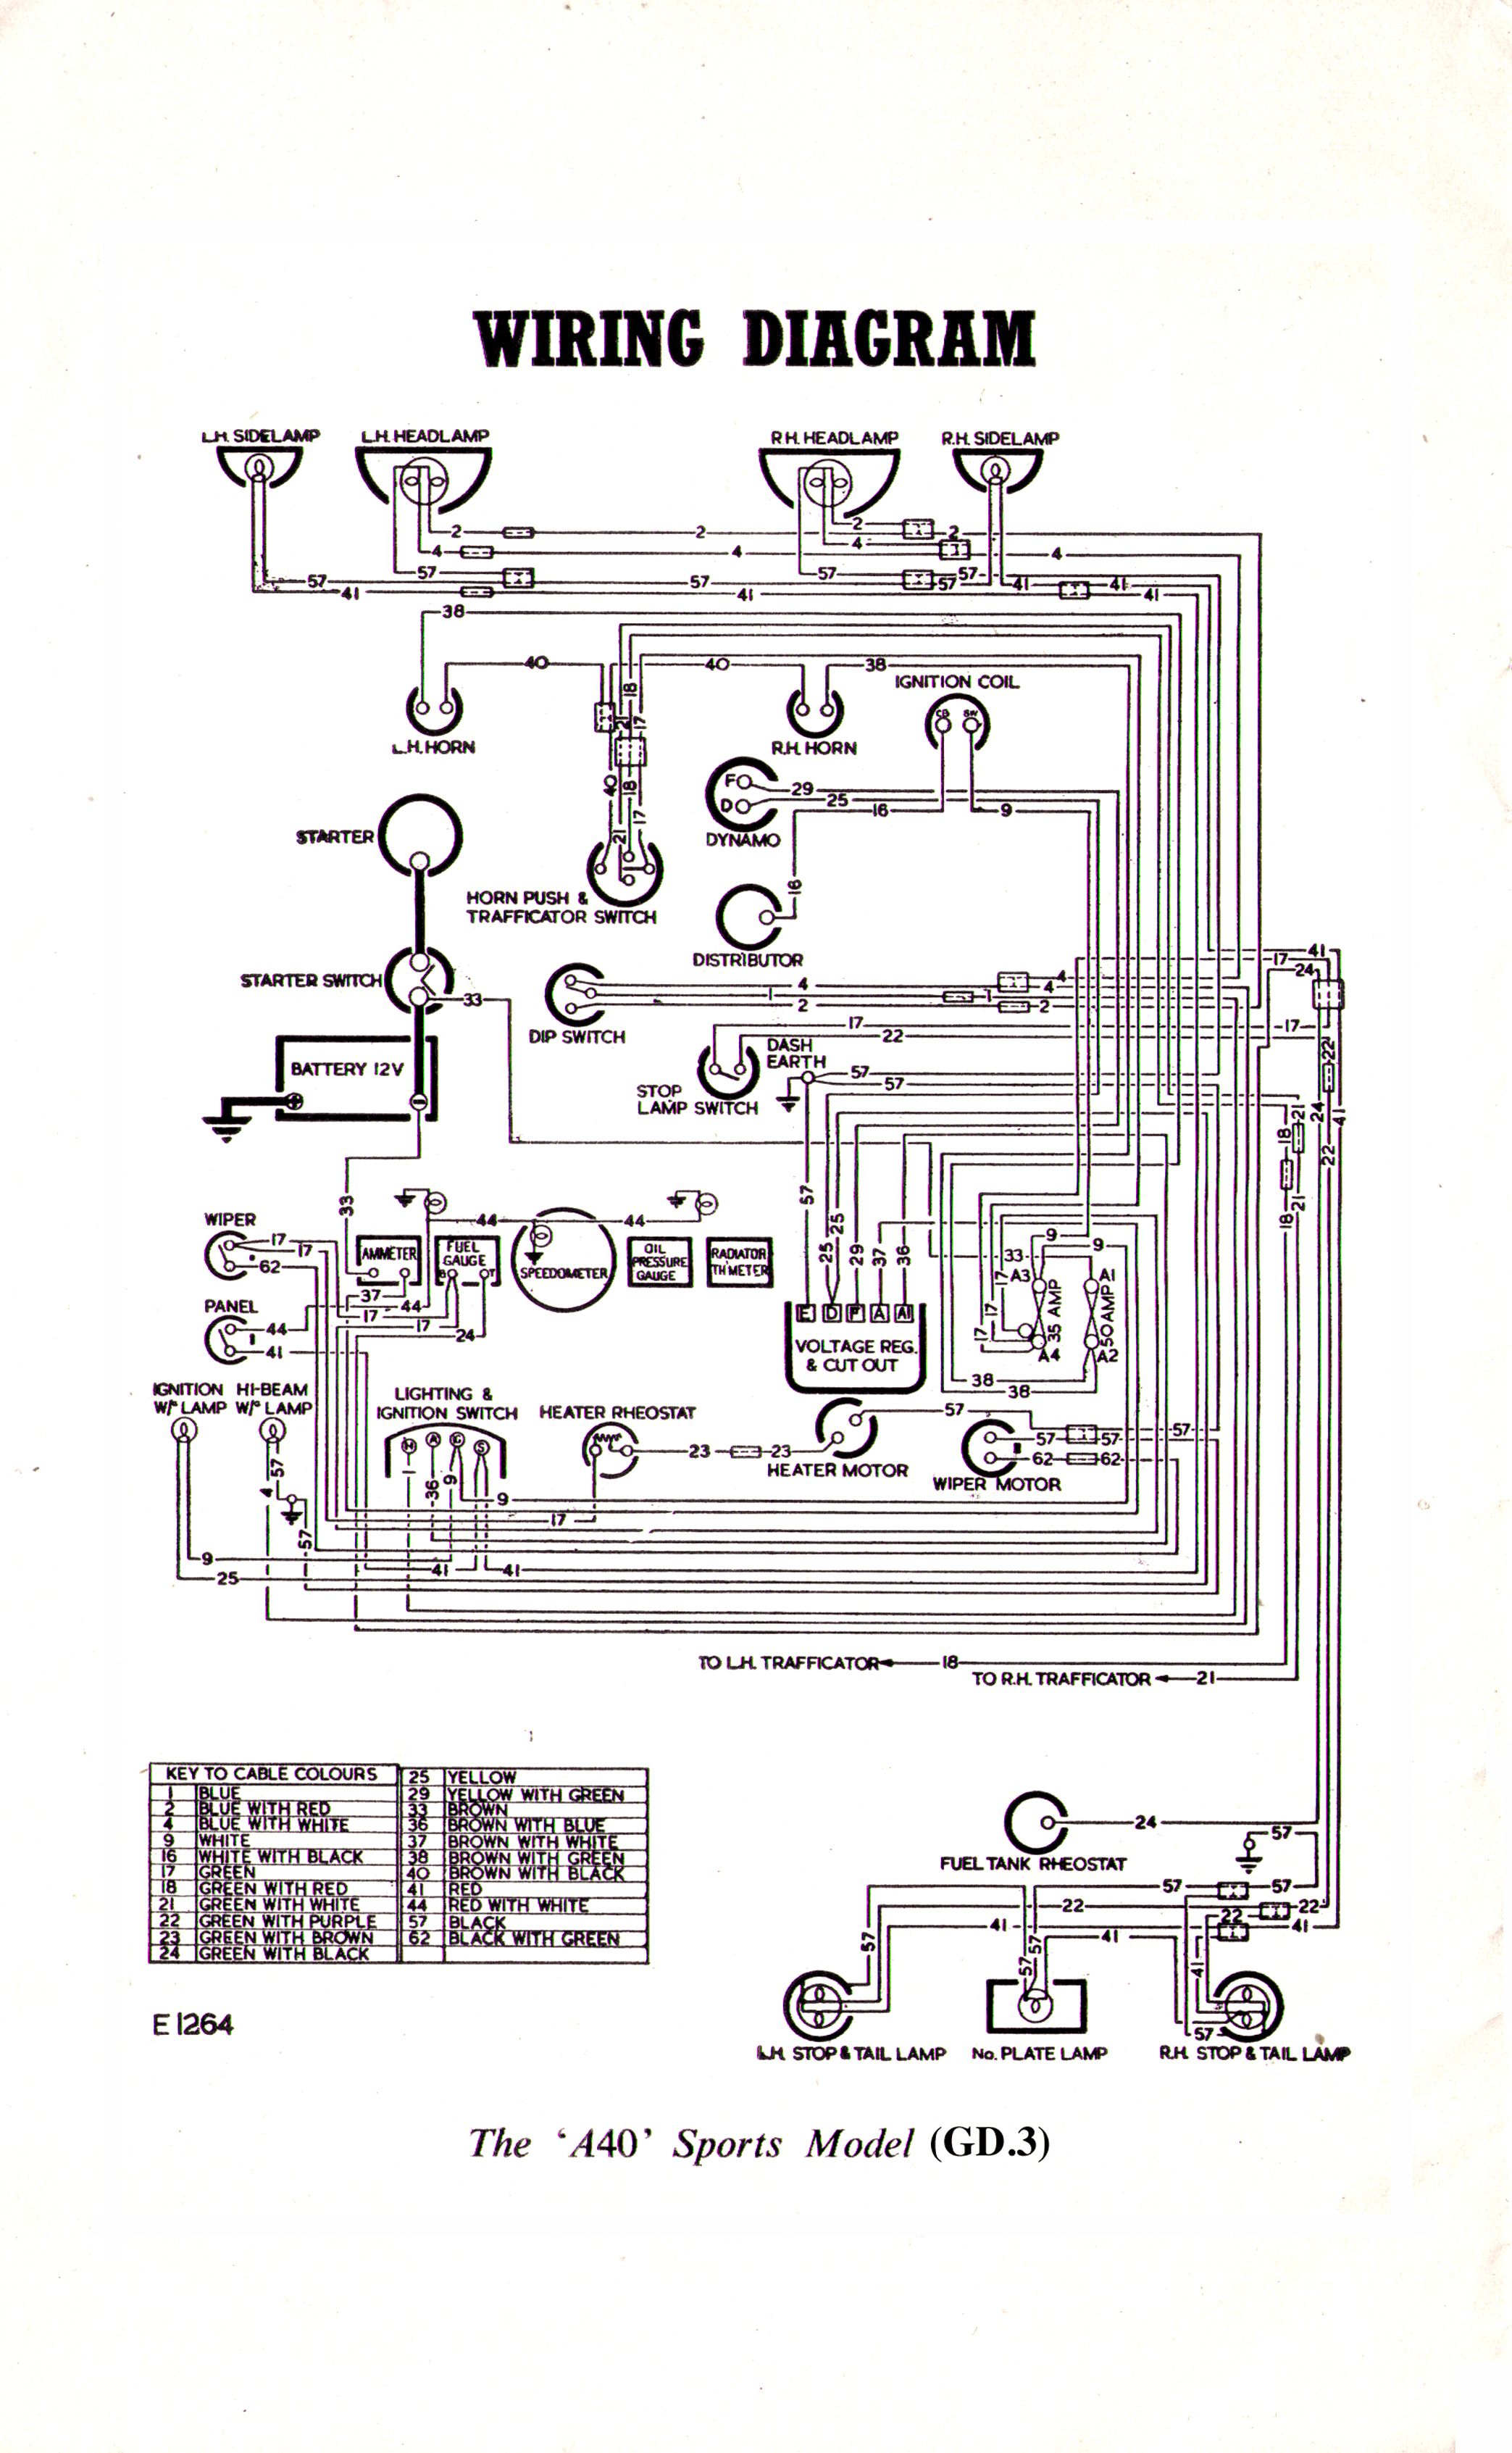 205a0edc241b4958cf54b2b531119c48 austin a40 sports gd3 wiring diagram austin a40 sports pinterest austin 10/4 wiring diagram at fashall.co